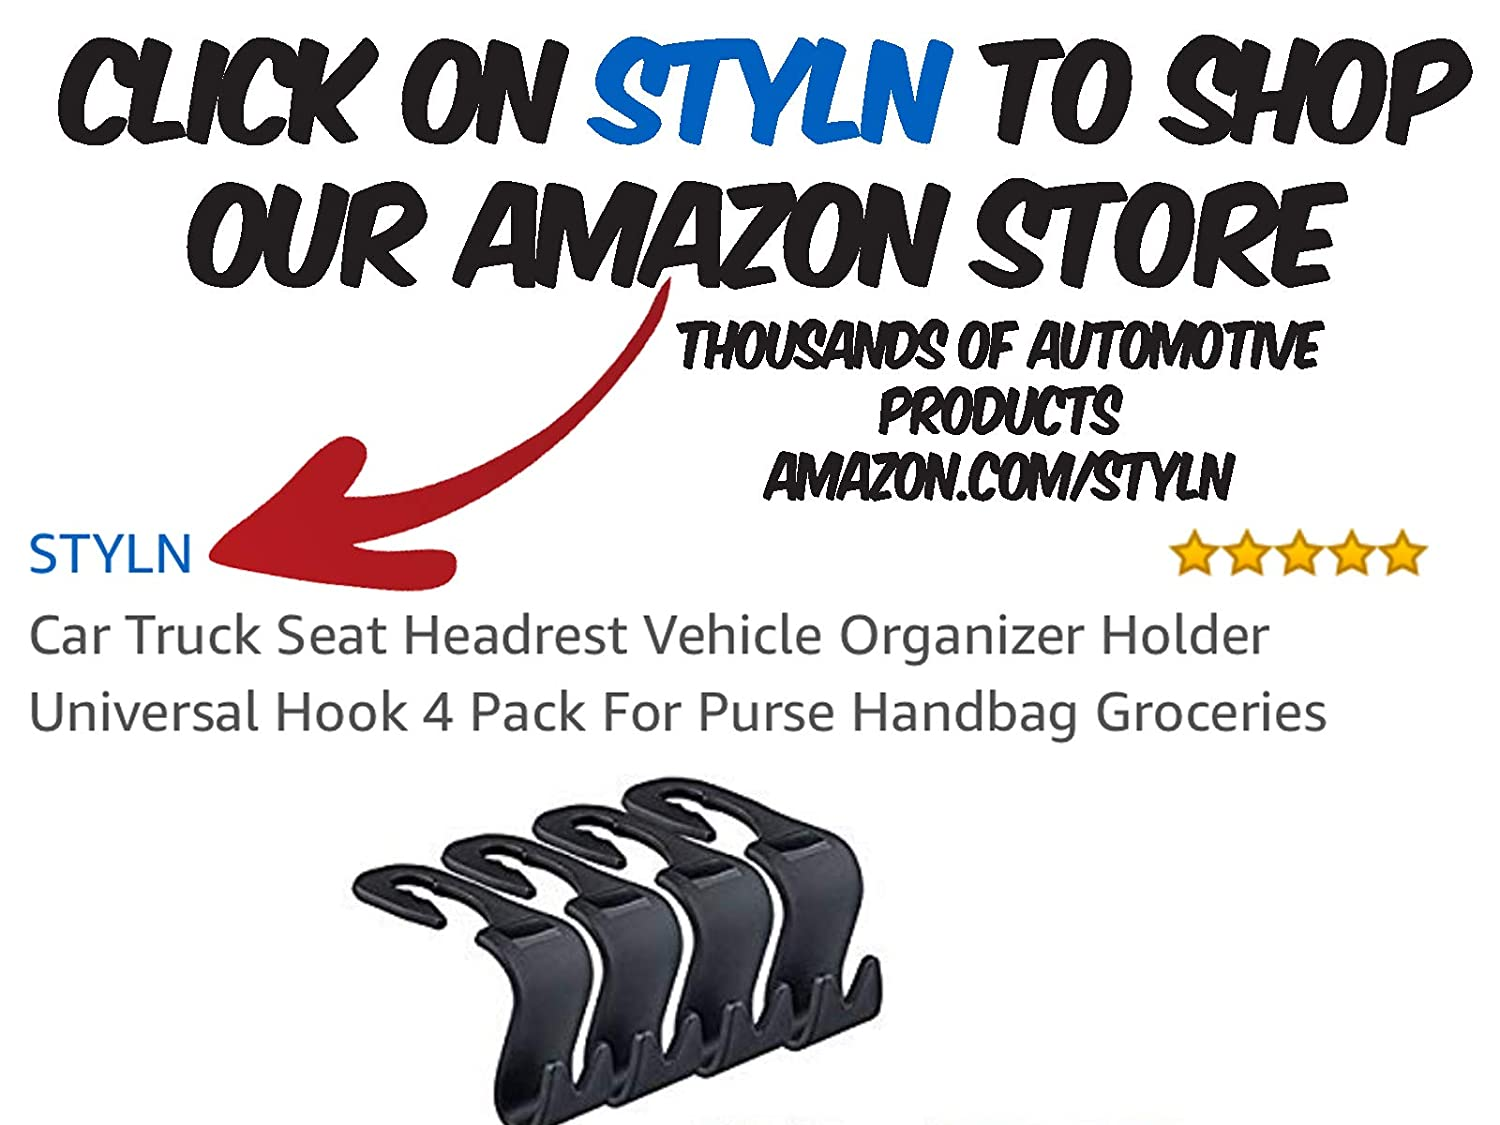 STYLN Car Truck Seat Headrest Vehicle Organizer Holder Universal Hook 4 Pack for Purse Handbag Groceries Styln Industries 5559020841